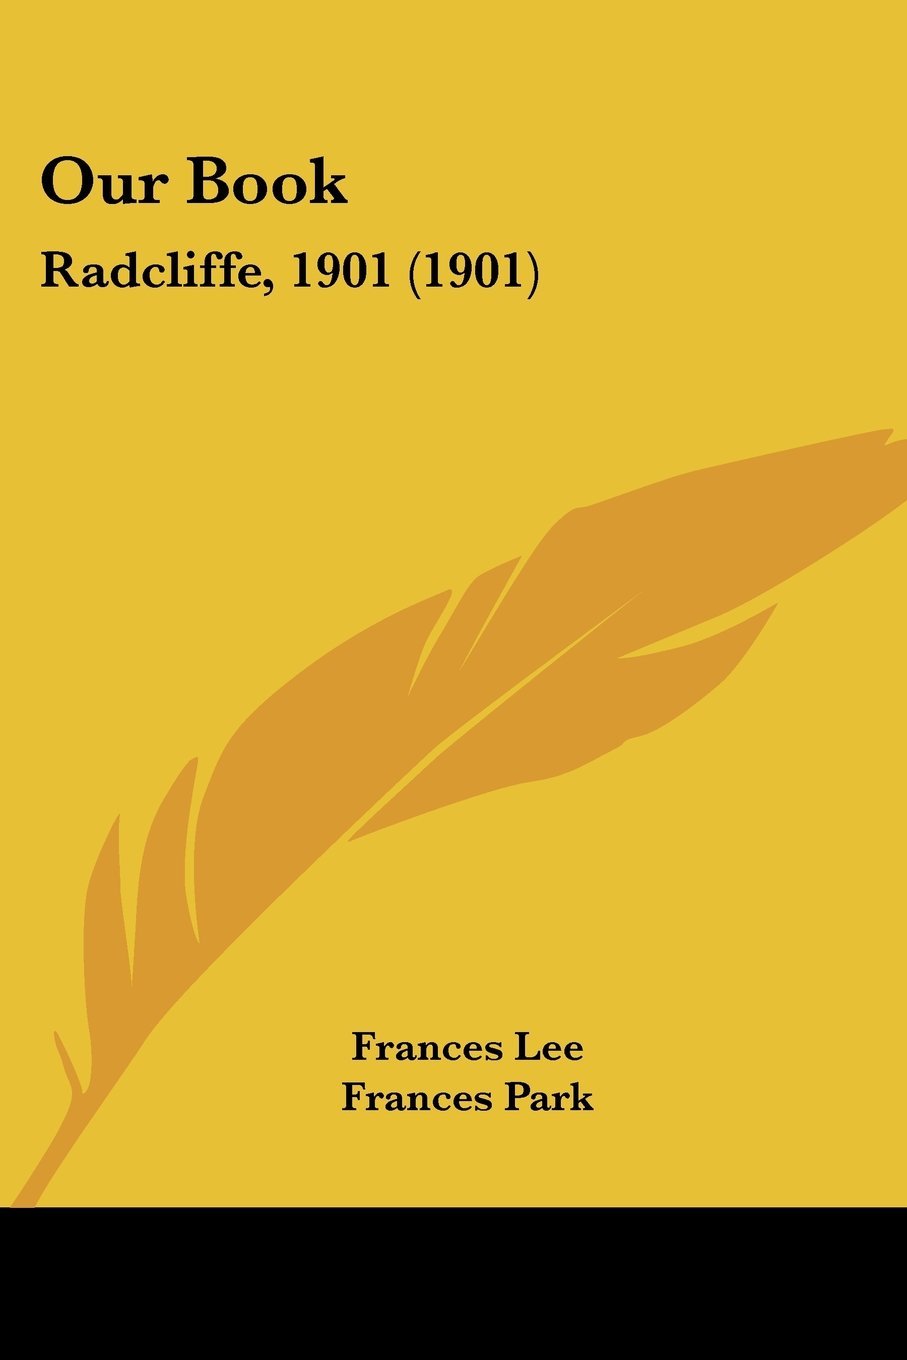 Our Book: Radcliffe, 1901 (1901) ebook